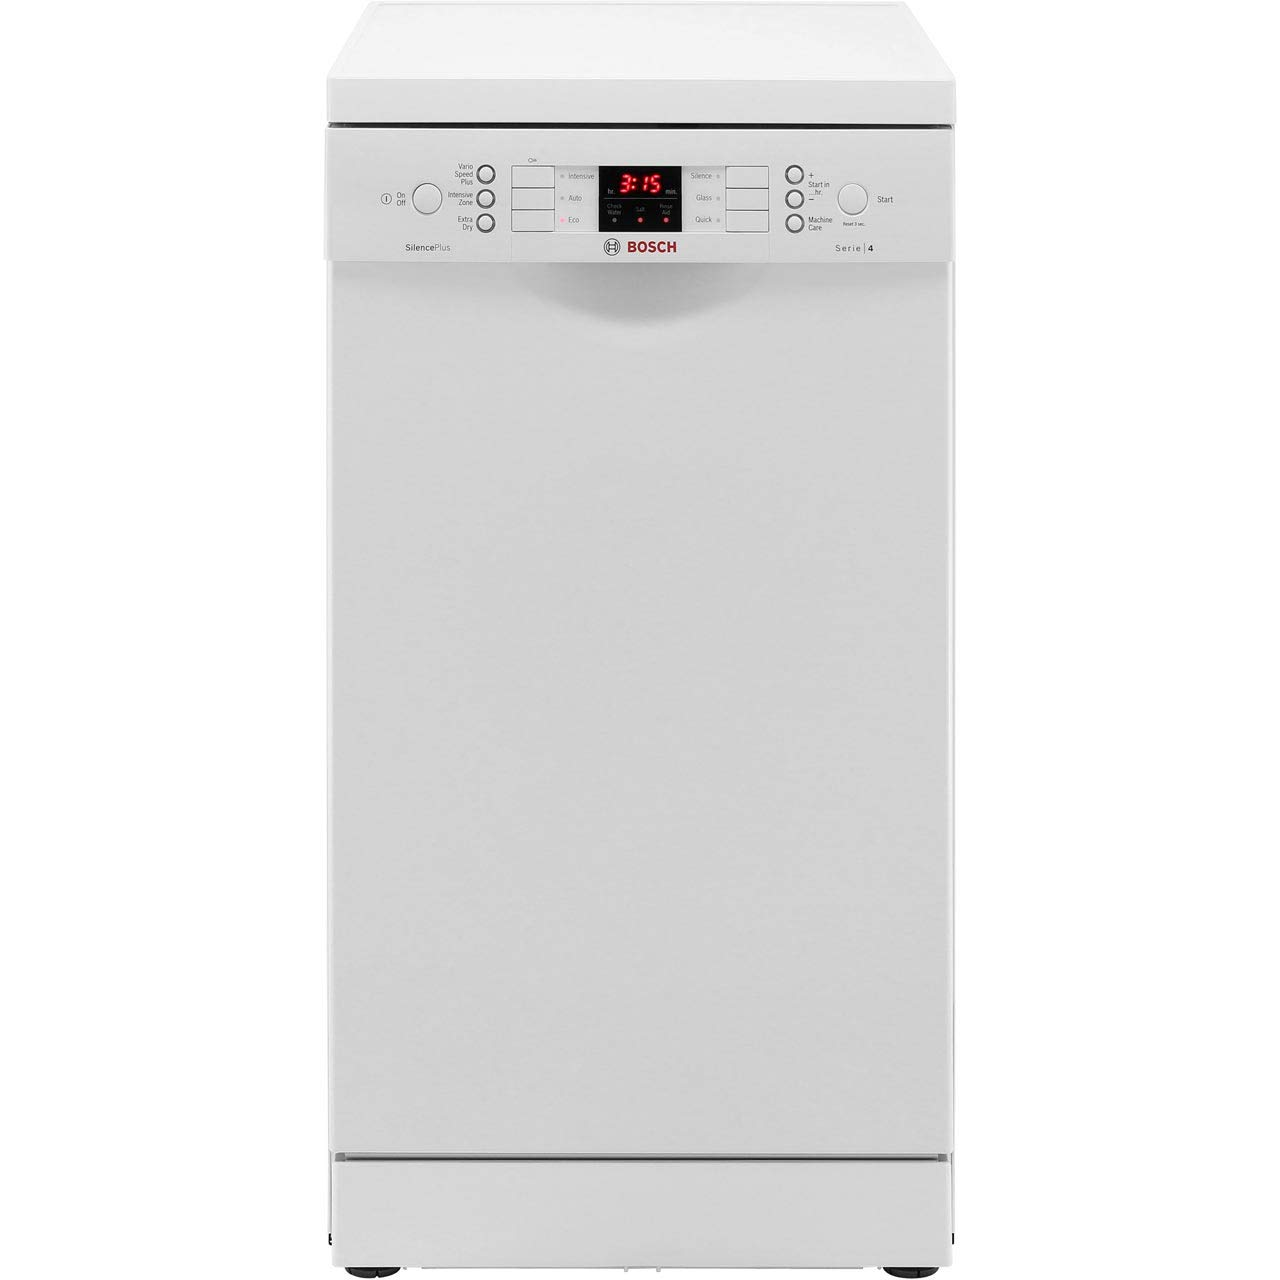 Bosch Serie 4 SPS46IW00G Silence Plus 45cm Freestanding Dishwasher with 9 Place Settings, A+ Energy, 6 Programmes and Child Safety [Energy Class A+]